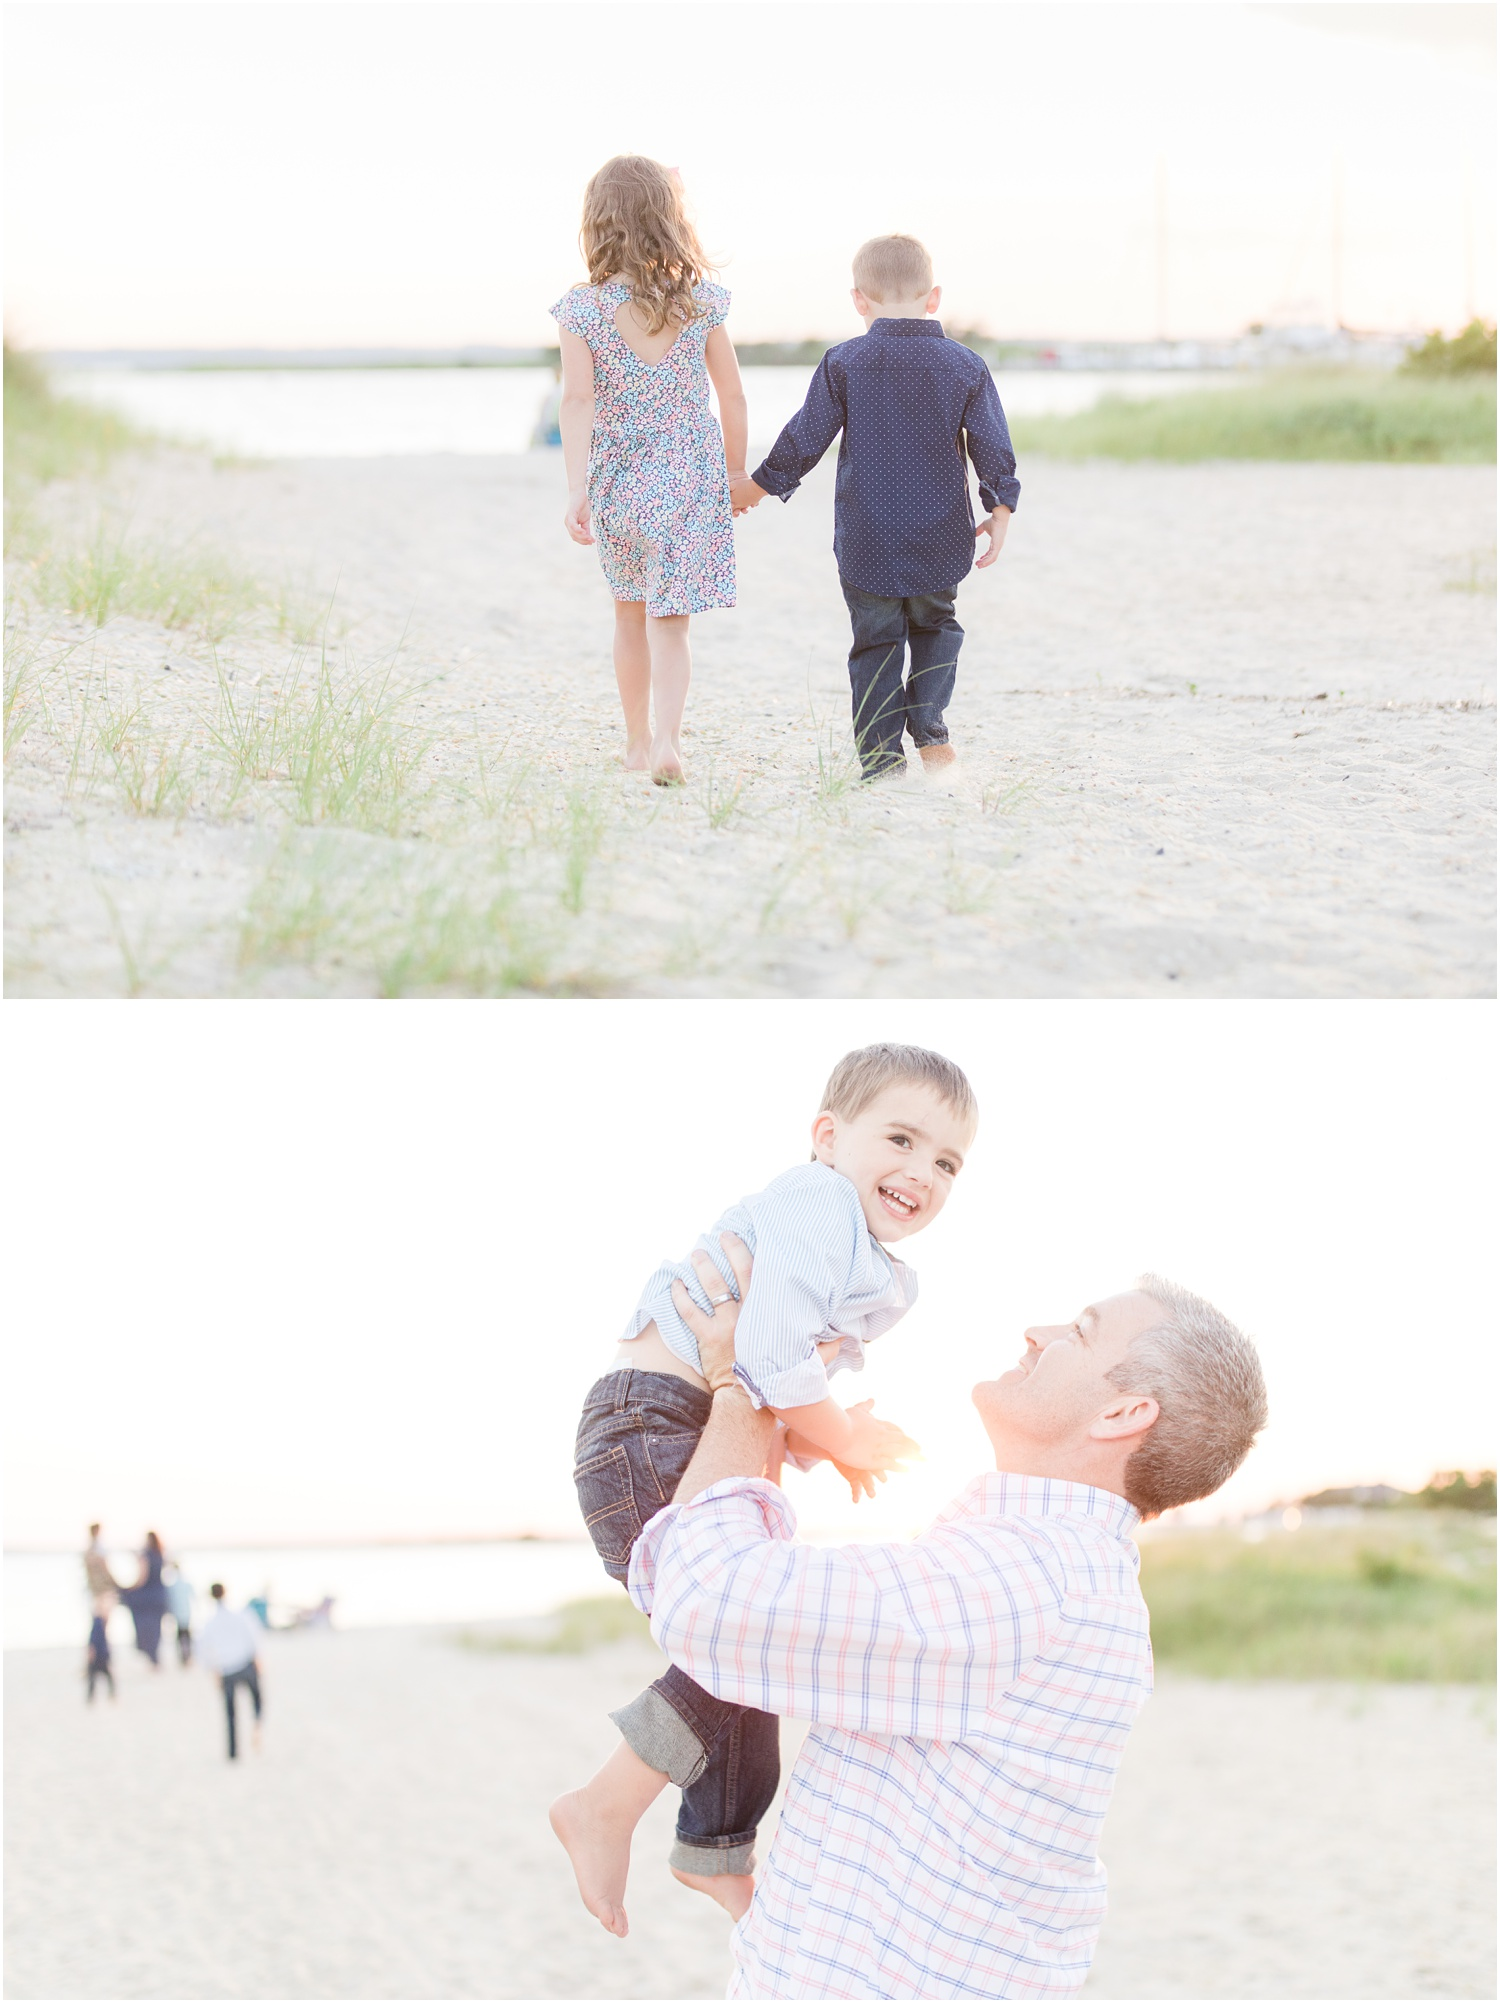 Family portraits at the bay beach in Lavallette.